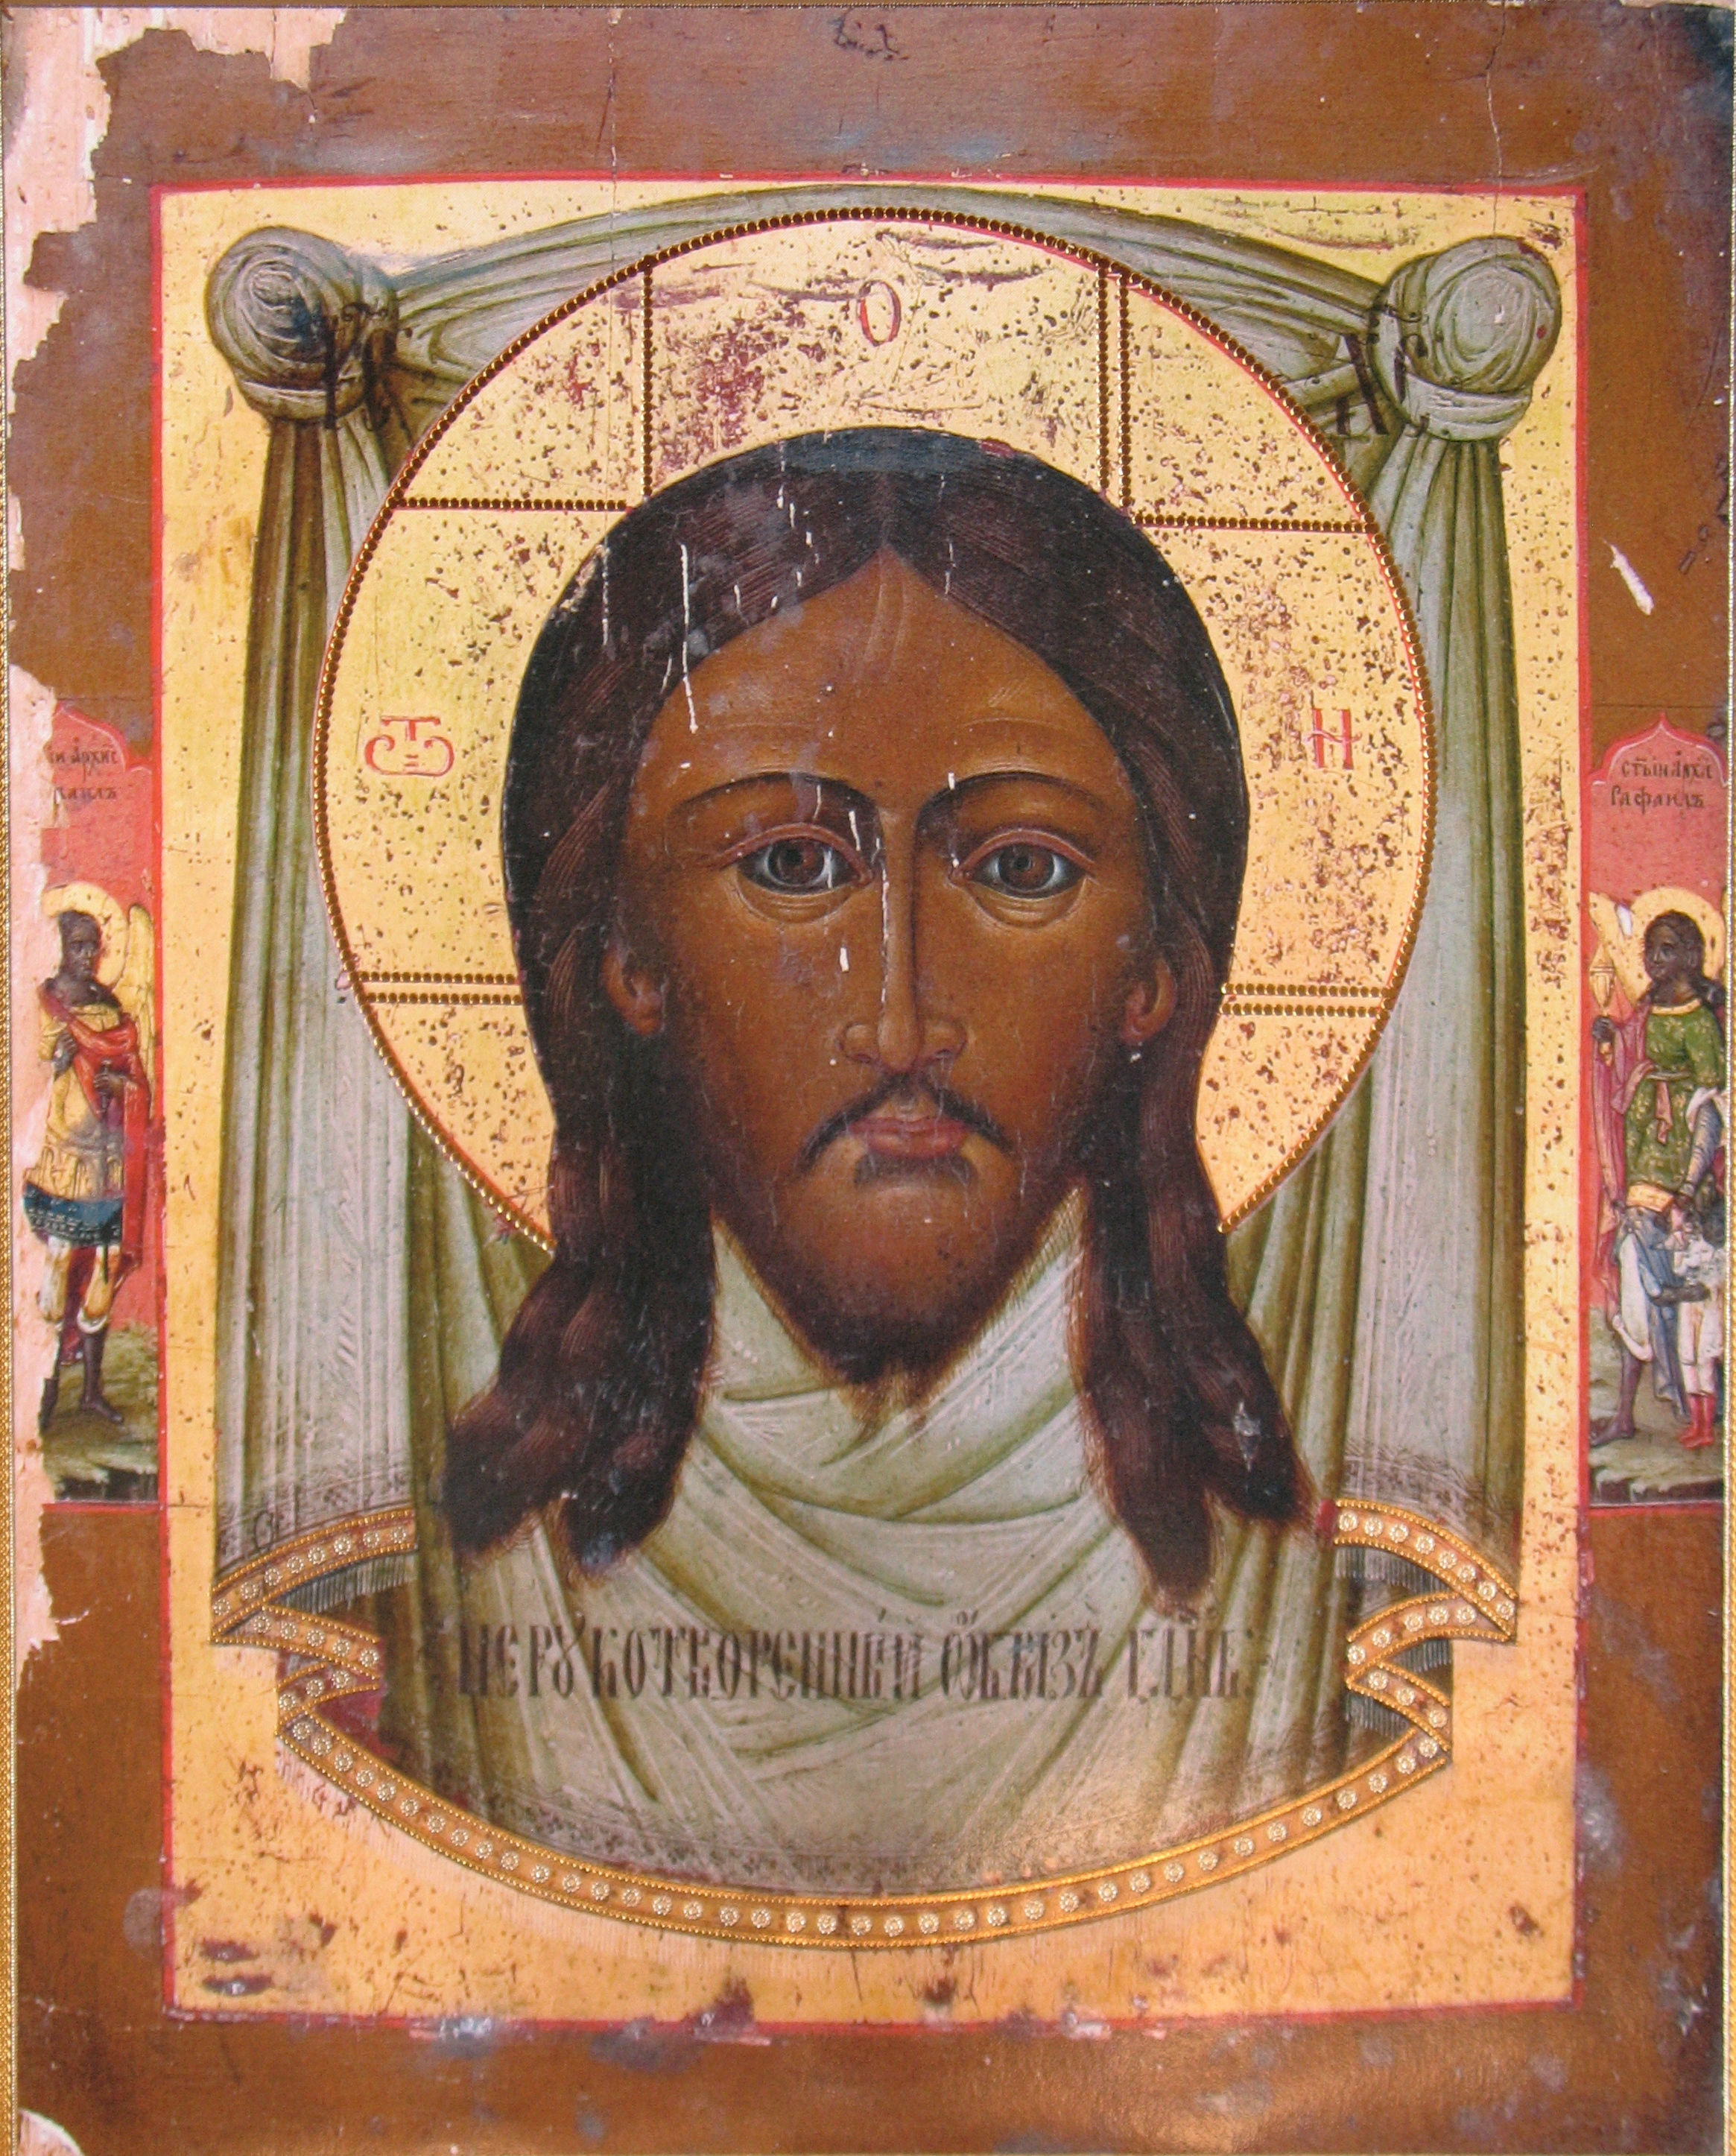 Harkovskij-Spas-Saviour-Orthodox-icon-18th-century-Harkov